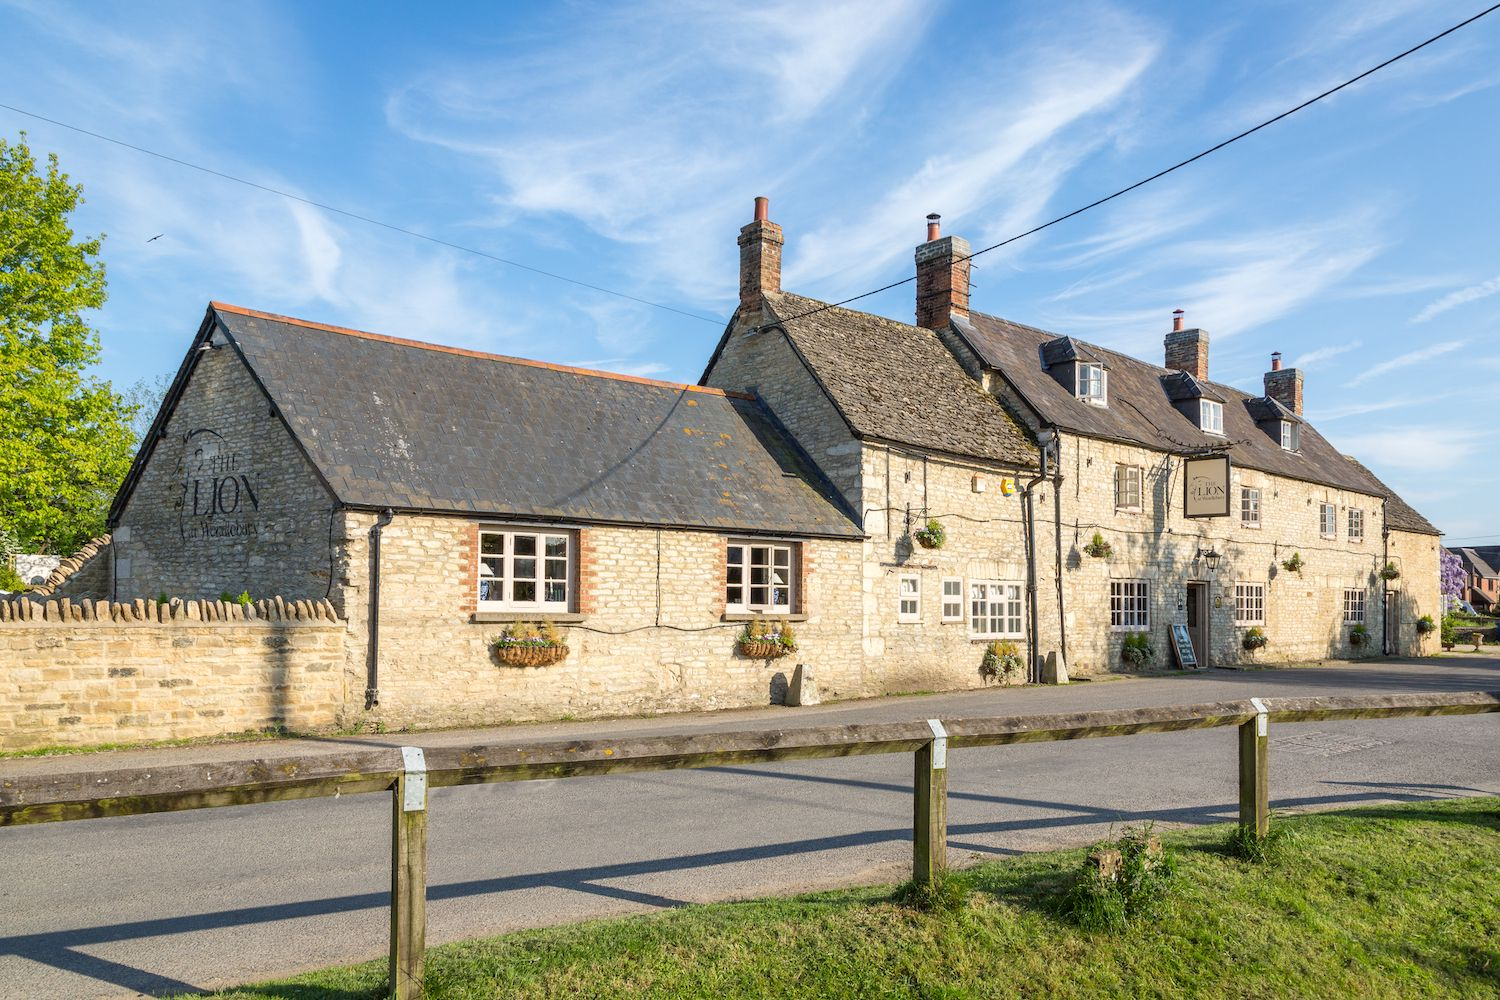 Hotels in Bicester holidays at Cool Places